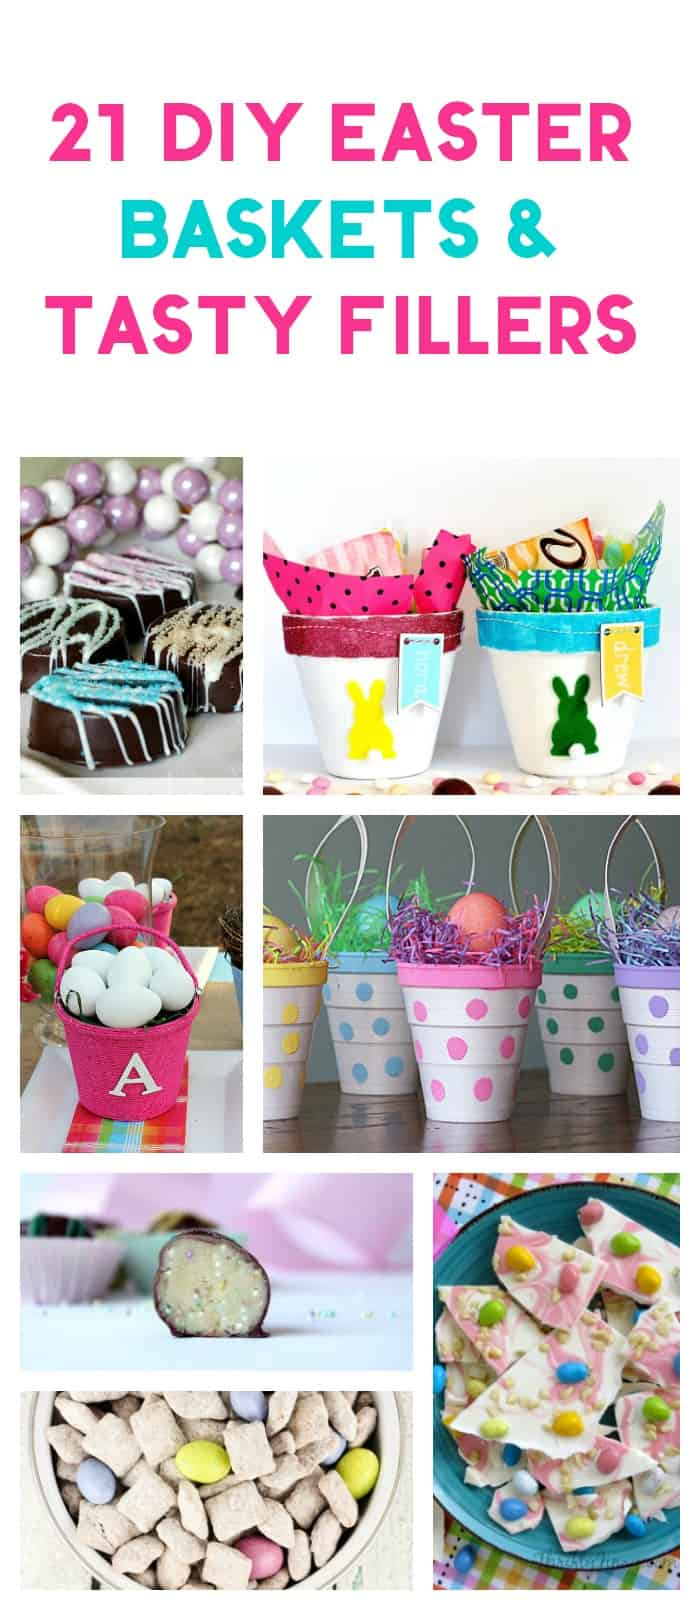 21 DIY Easter Baskets & Tasty Fillers: Save money on Easter with these clever basket ideas & tasty treats to put in them!